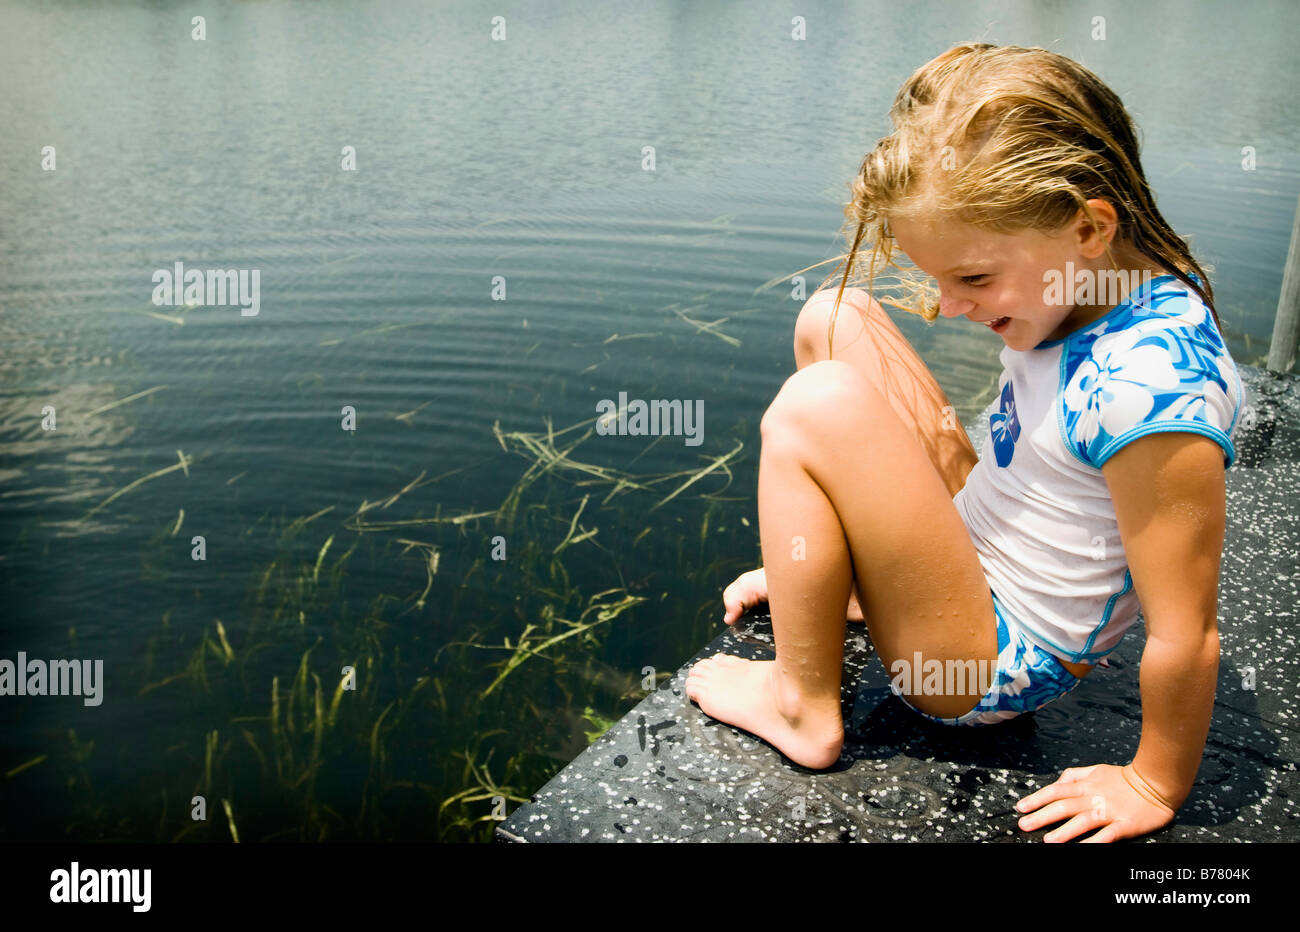 Young girl on dock by lake, Lifestyle - Stock Image